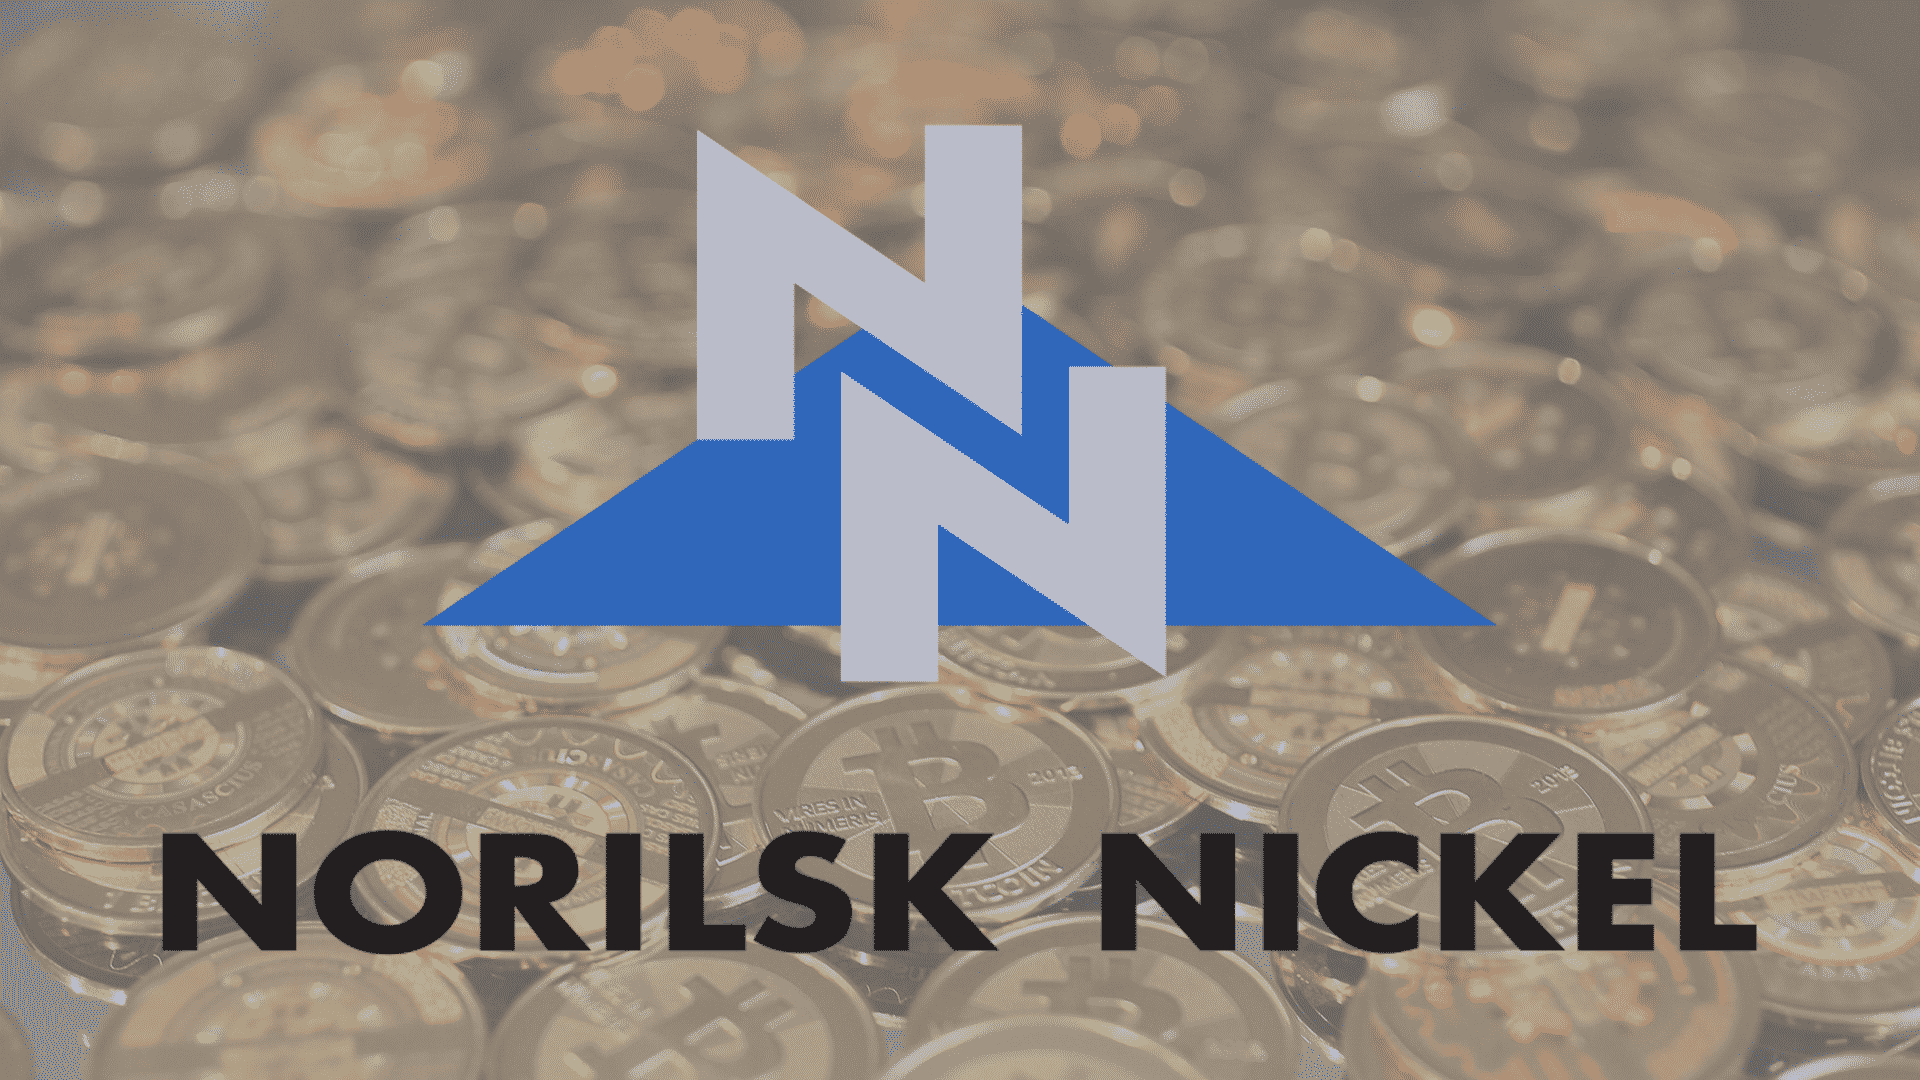 Russia-based Metal Company Norilsk Nickel Launches Palladium-backed Stablecoin